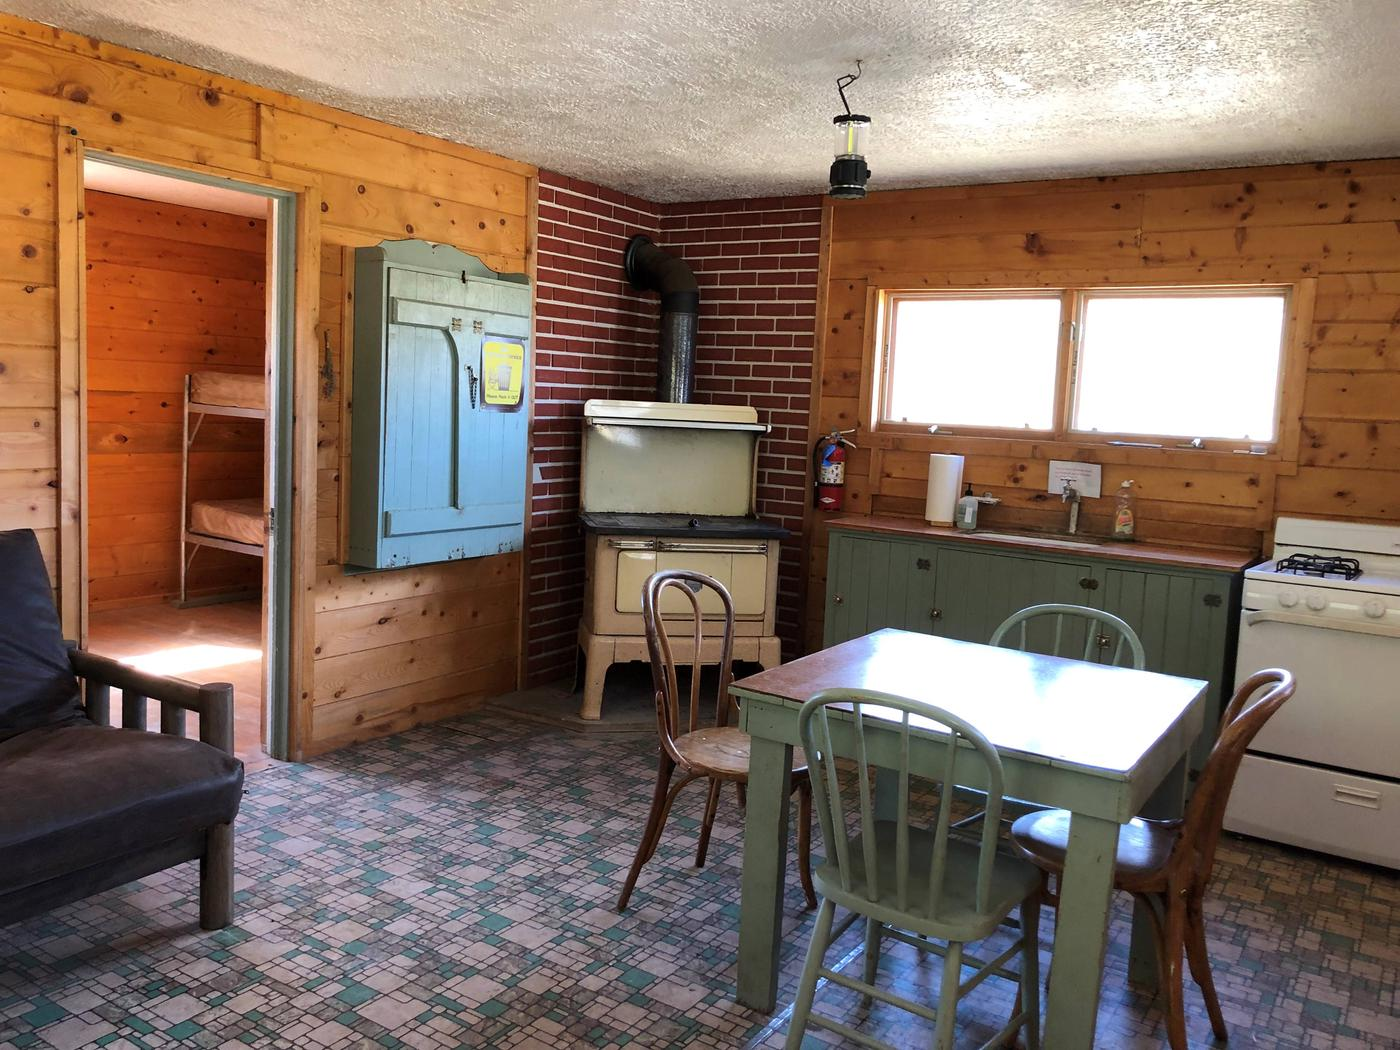 Woodstove, table and chairs, gas range and sinkFront Room of Cabin